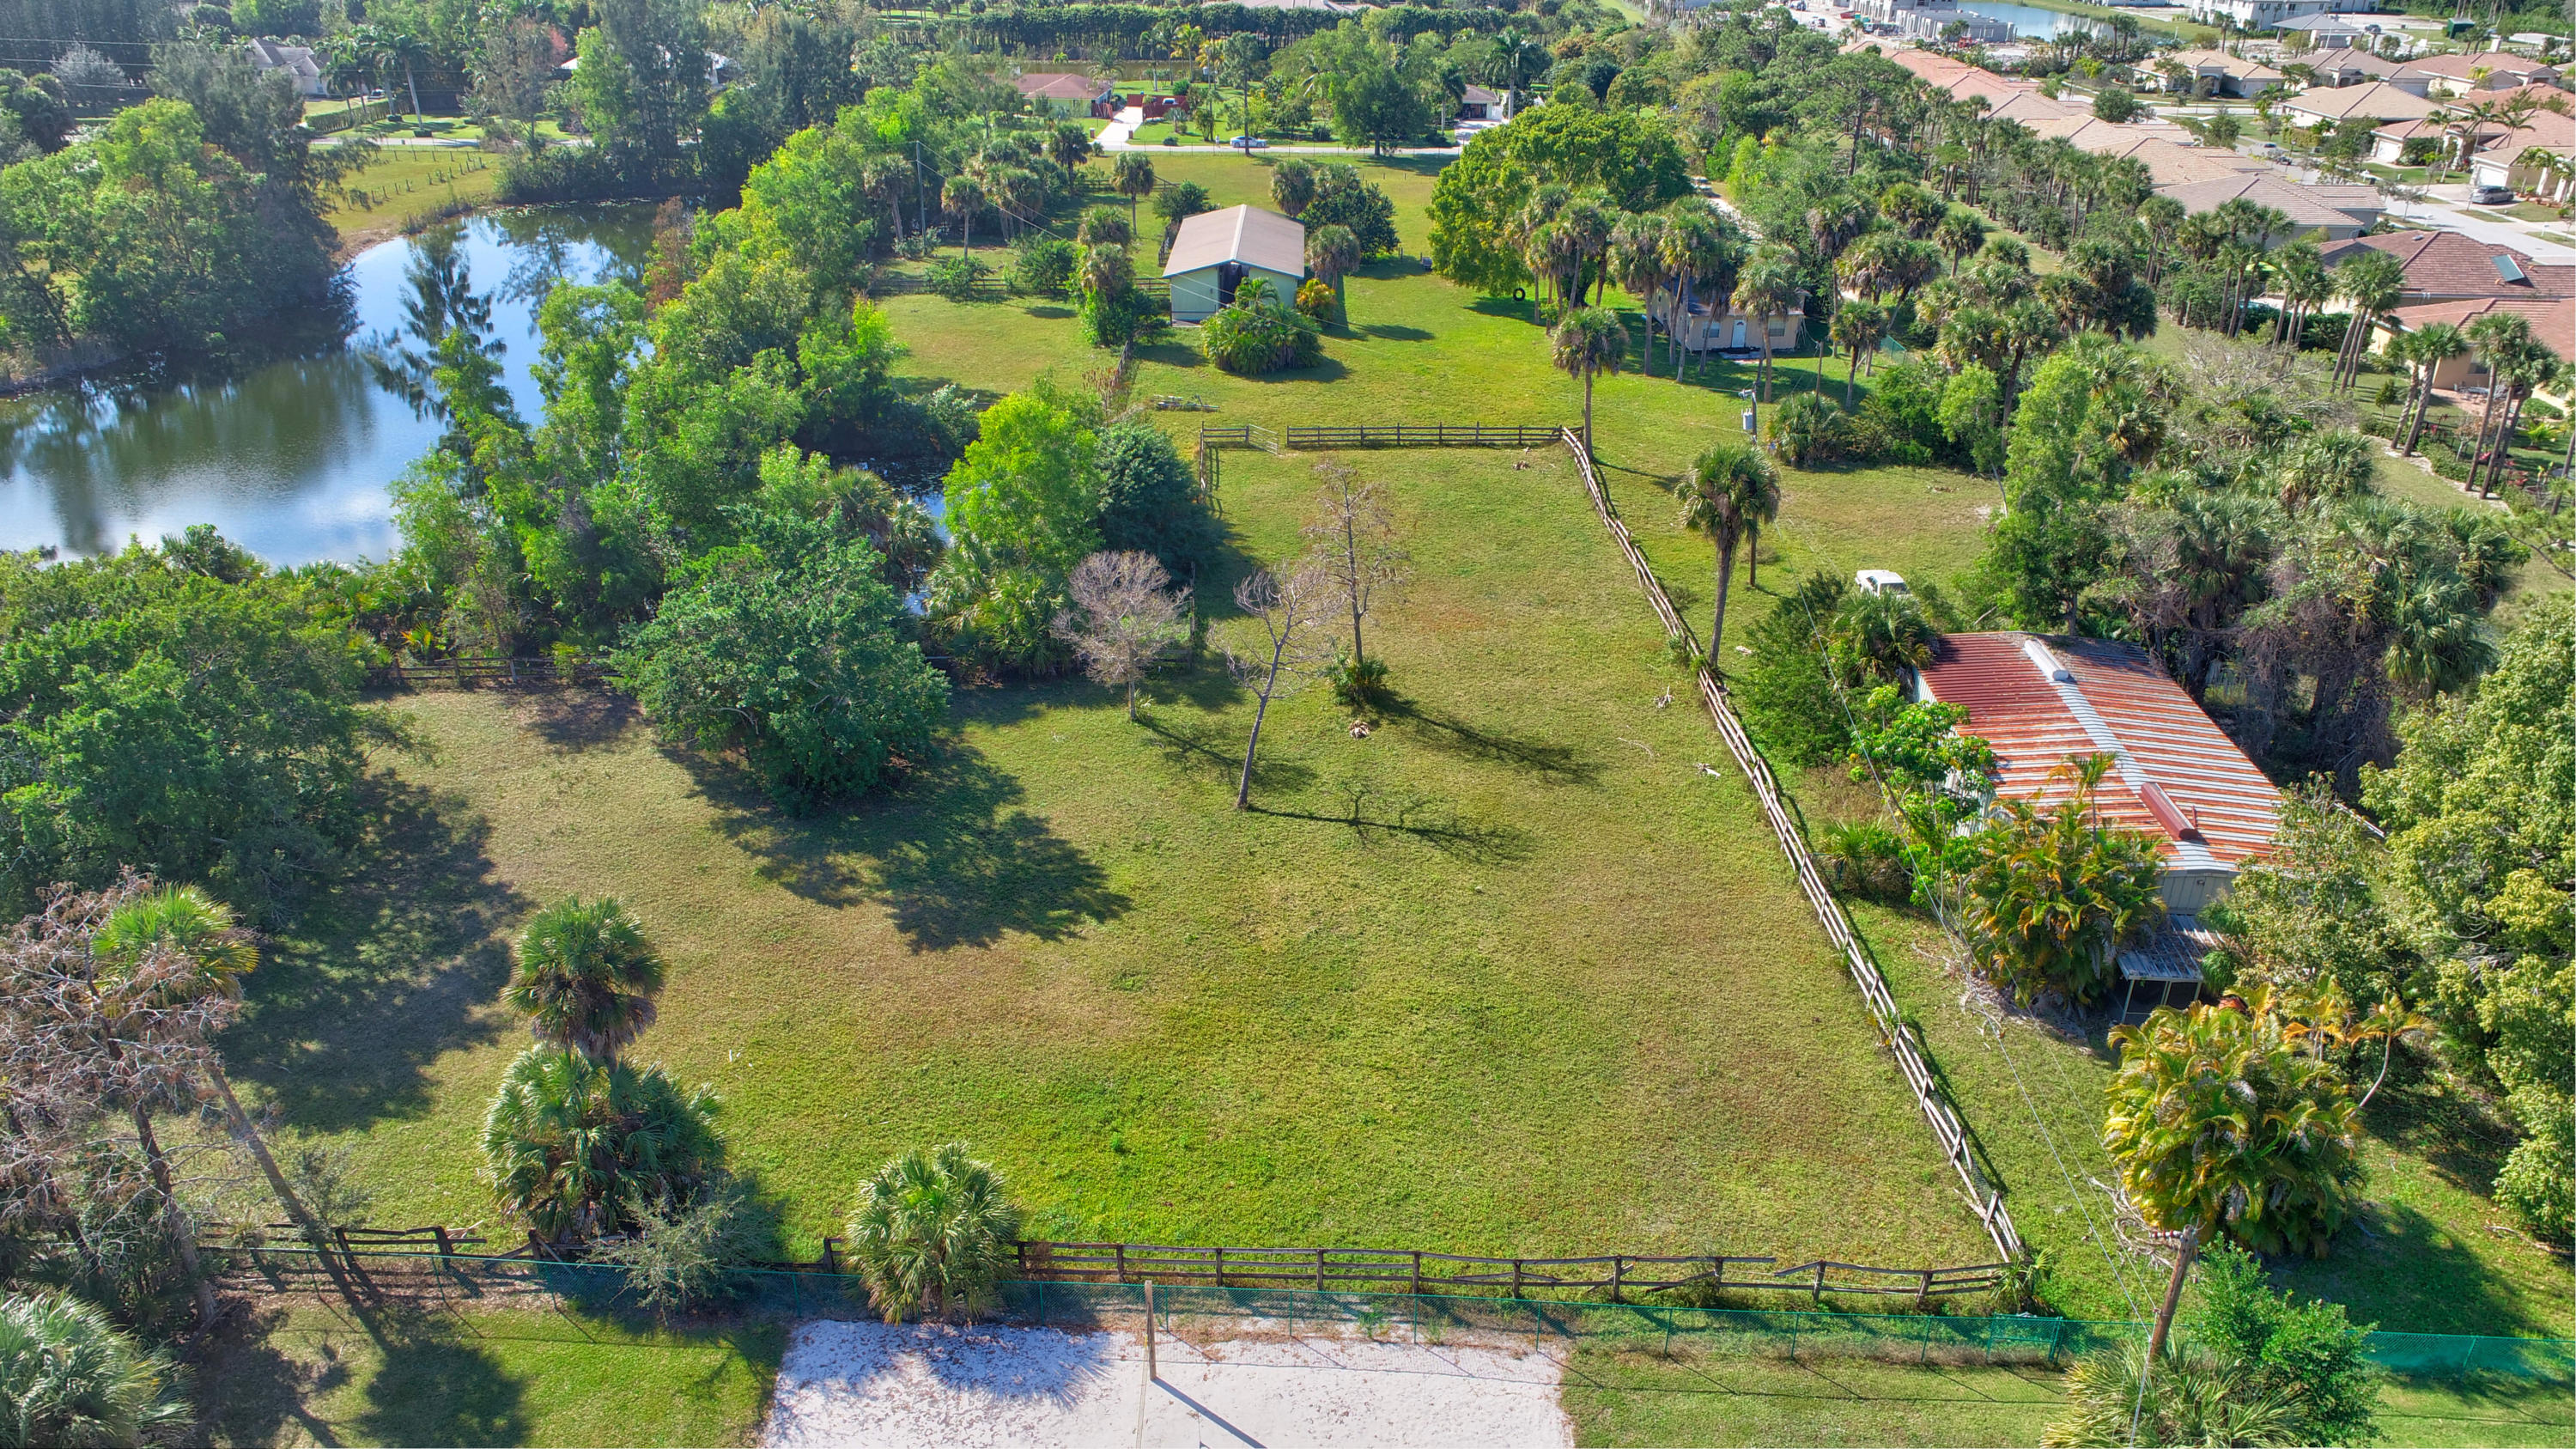 575 Whippoorwill Trail West Palm Beach, FL 33411 small photo 12